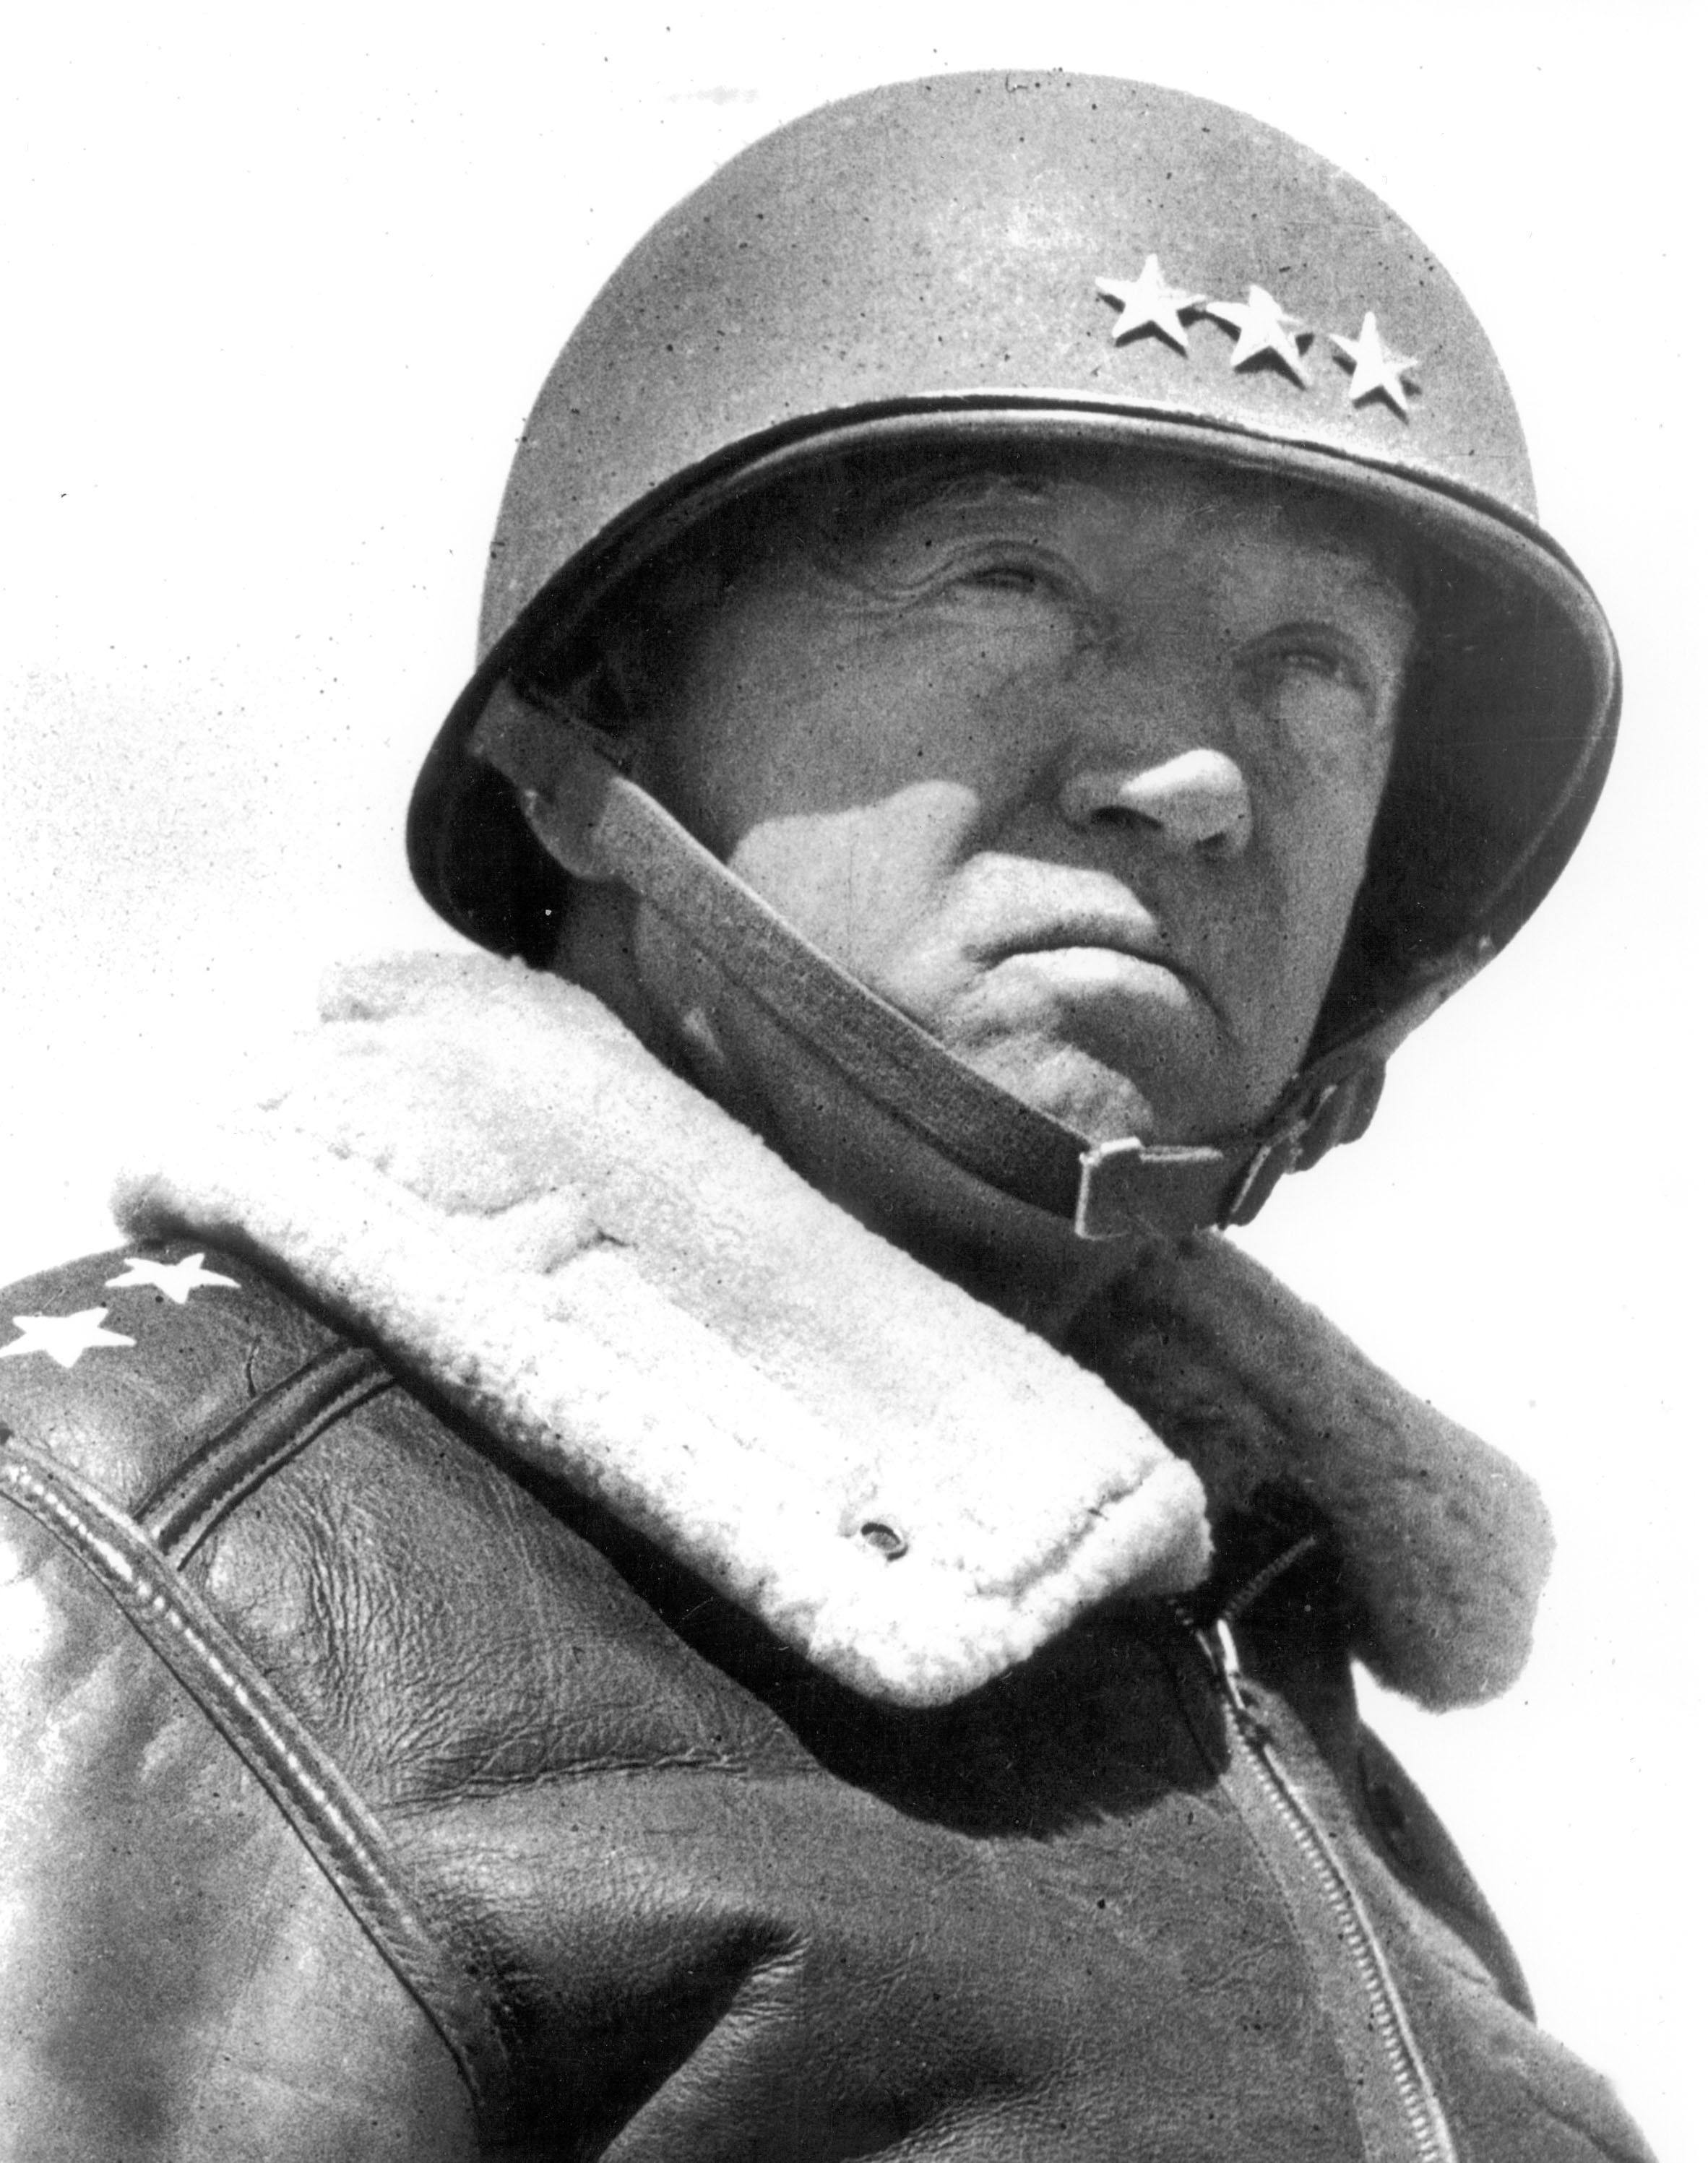 general patton pics  Patton and the Power of the Bugle